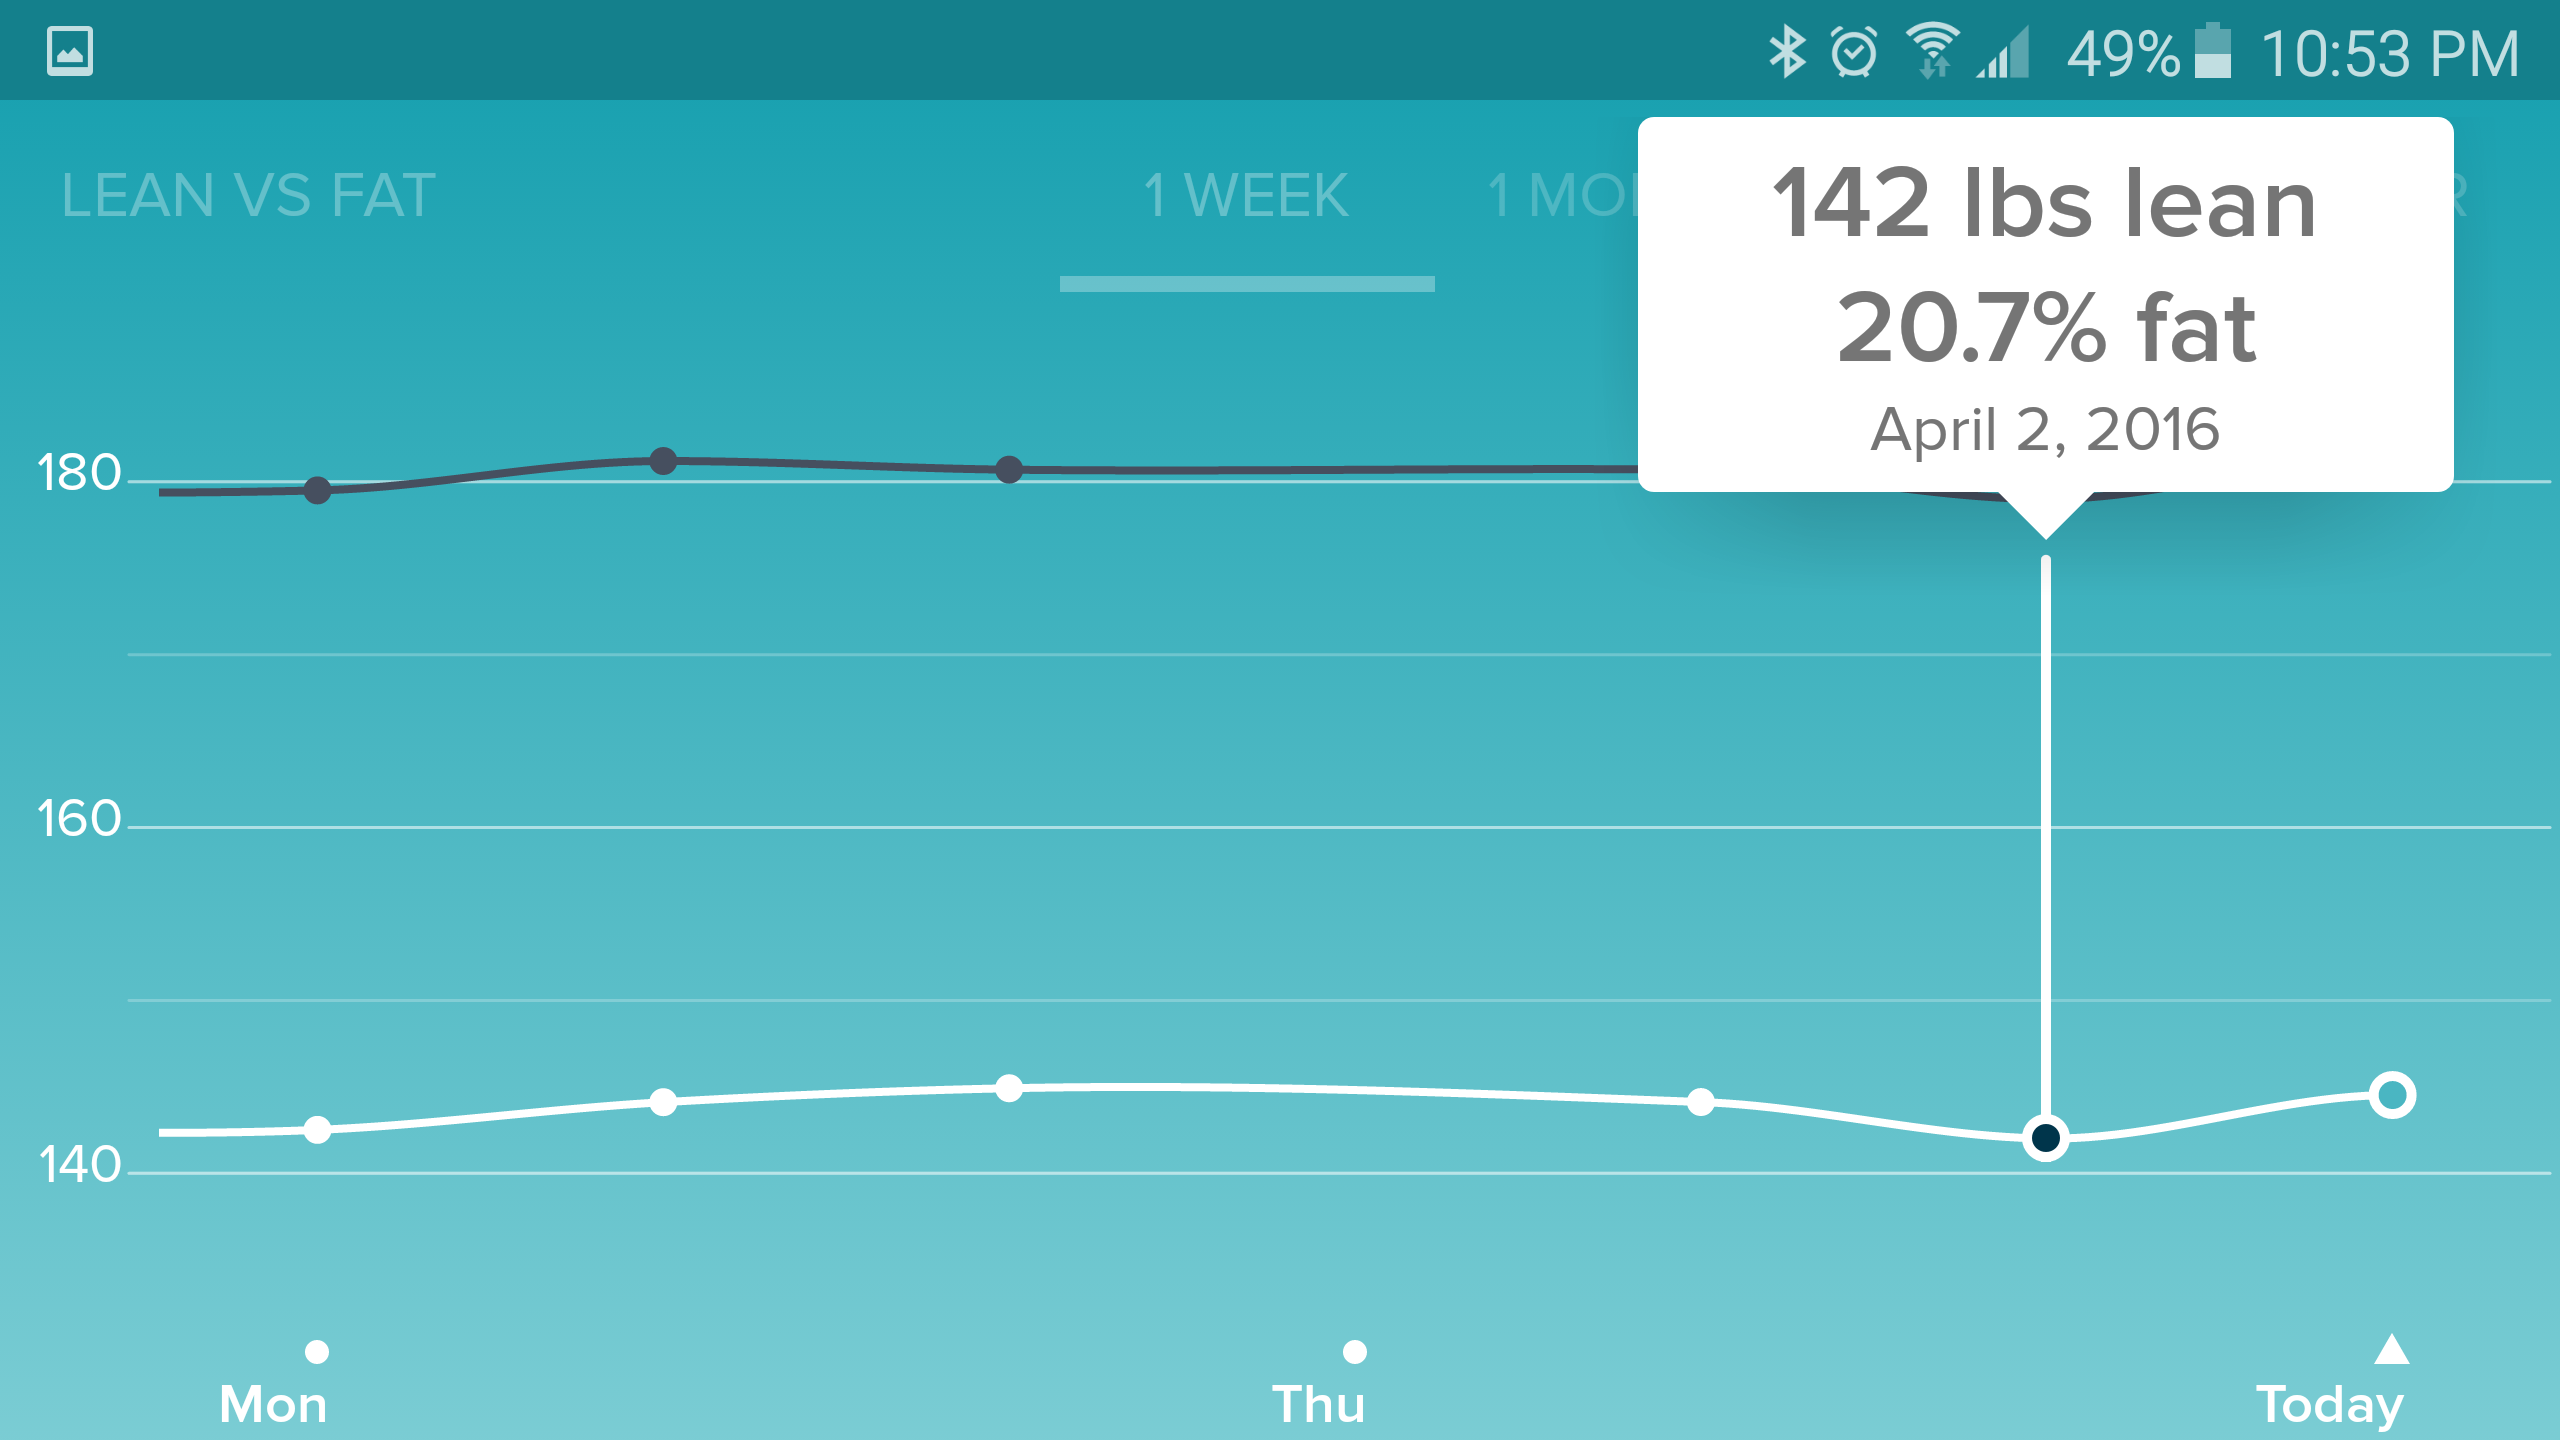 fat lbs missing from lean vs fat lbs graph fitbit community